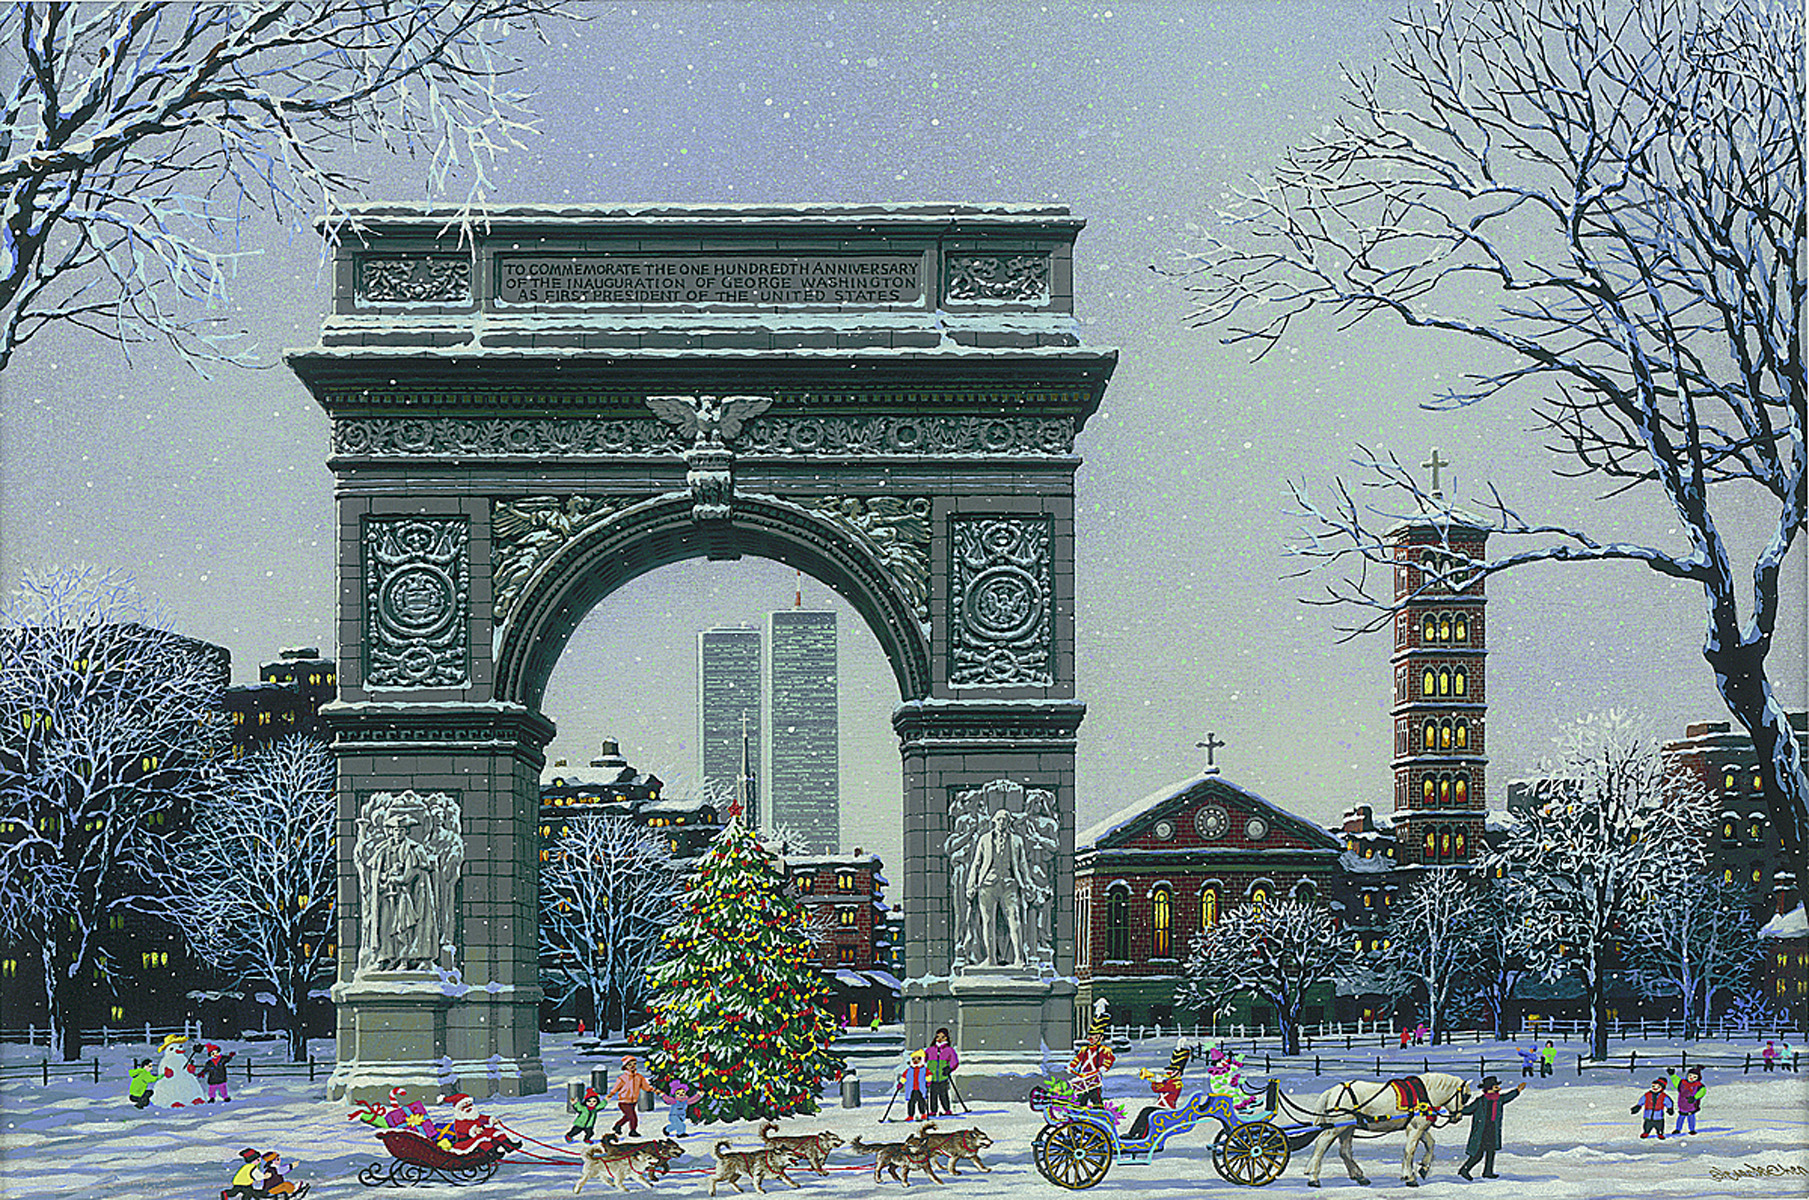 """Washington Square Park"" (2015), Alexander Chen, Park West Gallery Winter Art"